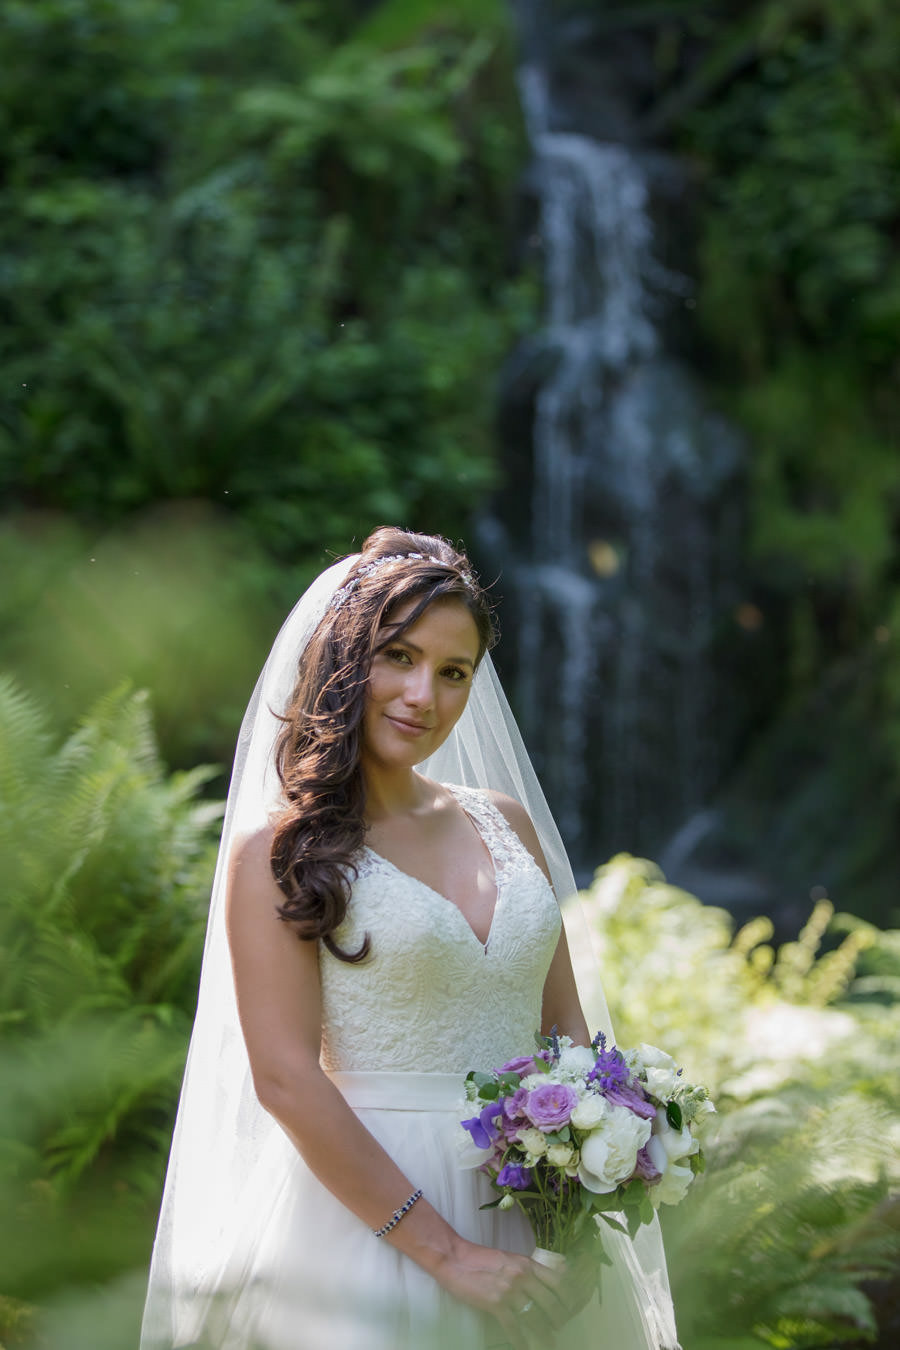 Brides portrait at Hestercombe Gardens cascade Somerset